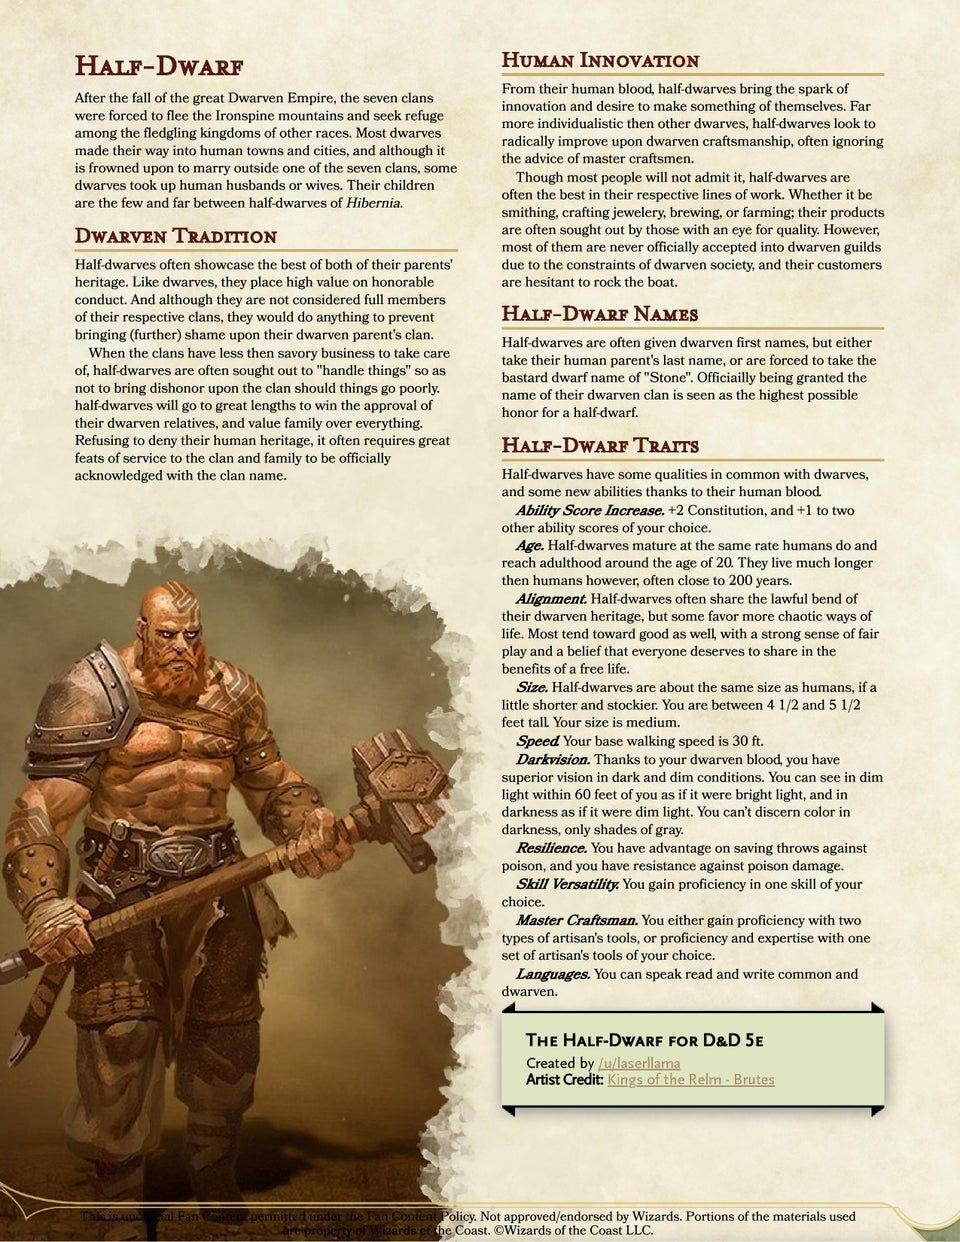 Reddit Unearthedarcana Half Dwarf With The Strength And Honor Of The Great Dwarven Clans And The Ingenuity And Determination Of Humans Nothing Ca Rollspel